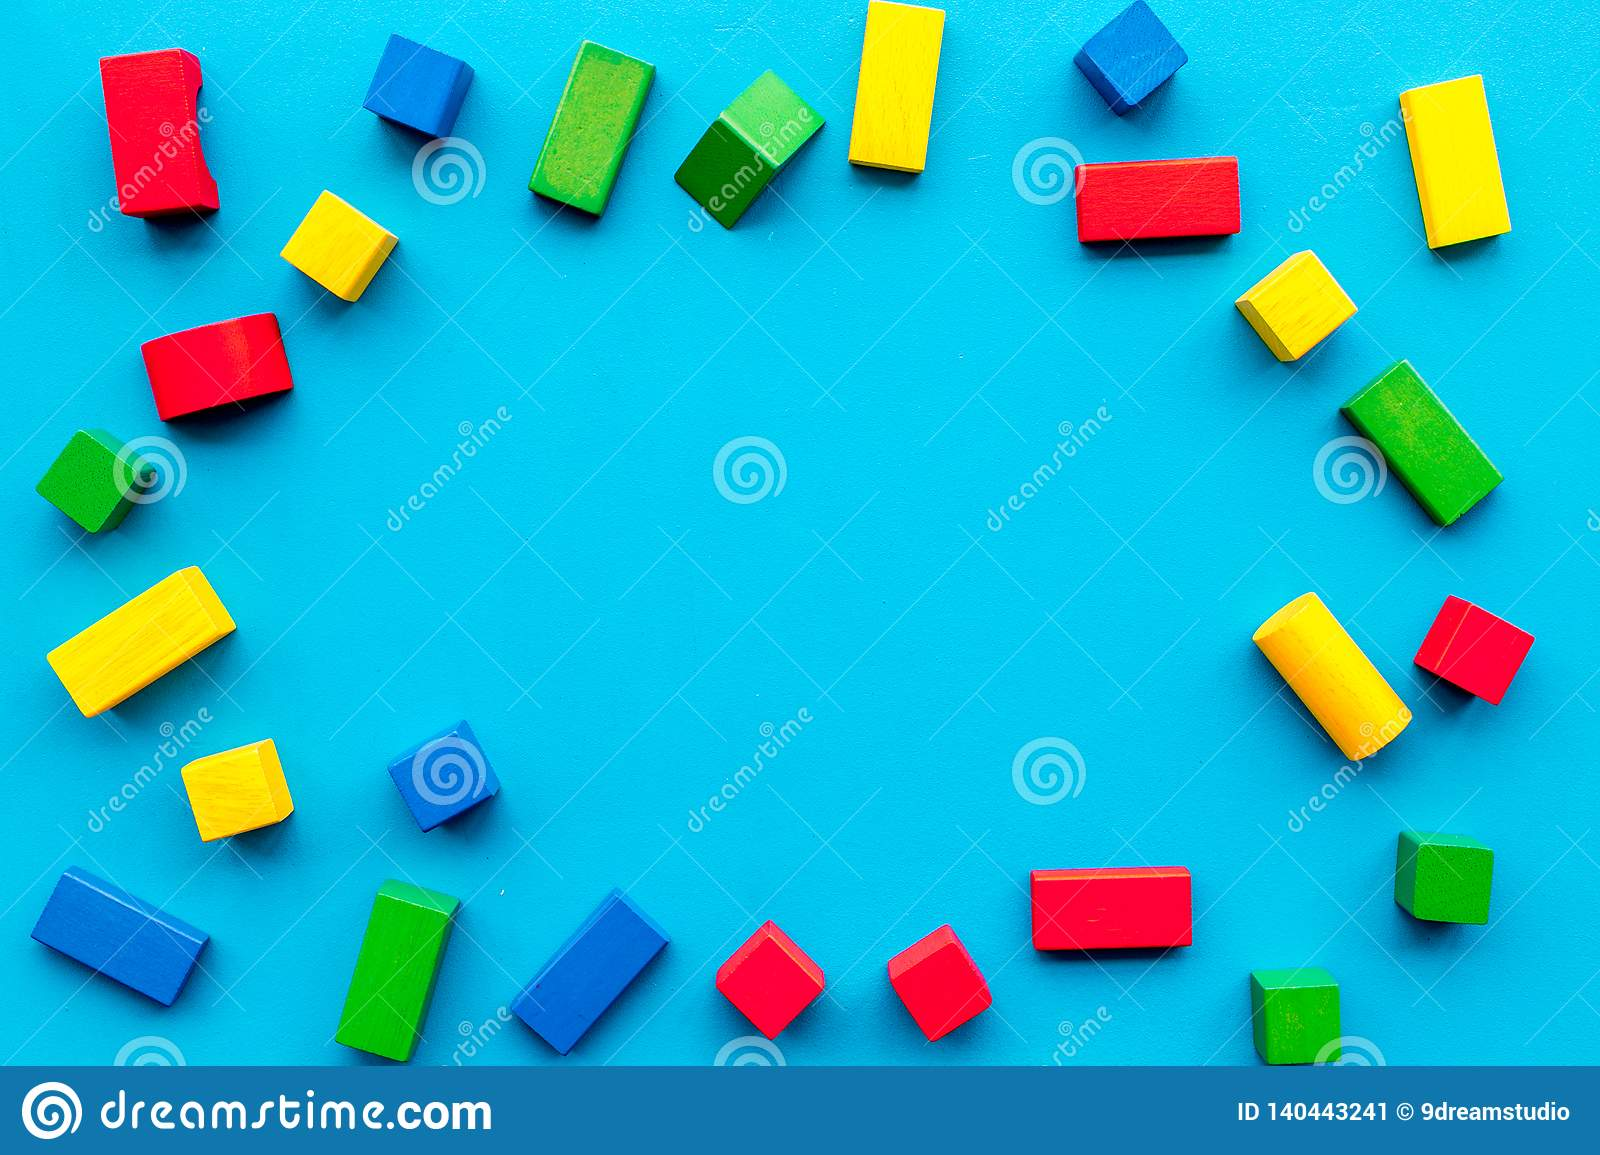 Construction game for kids. Wooden building blocks, toy bricks on blue background top view copy space frame